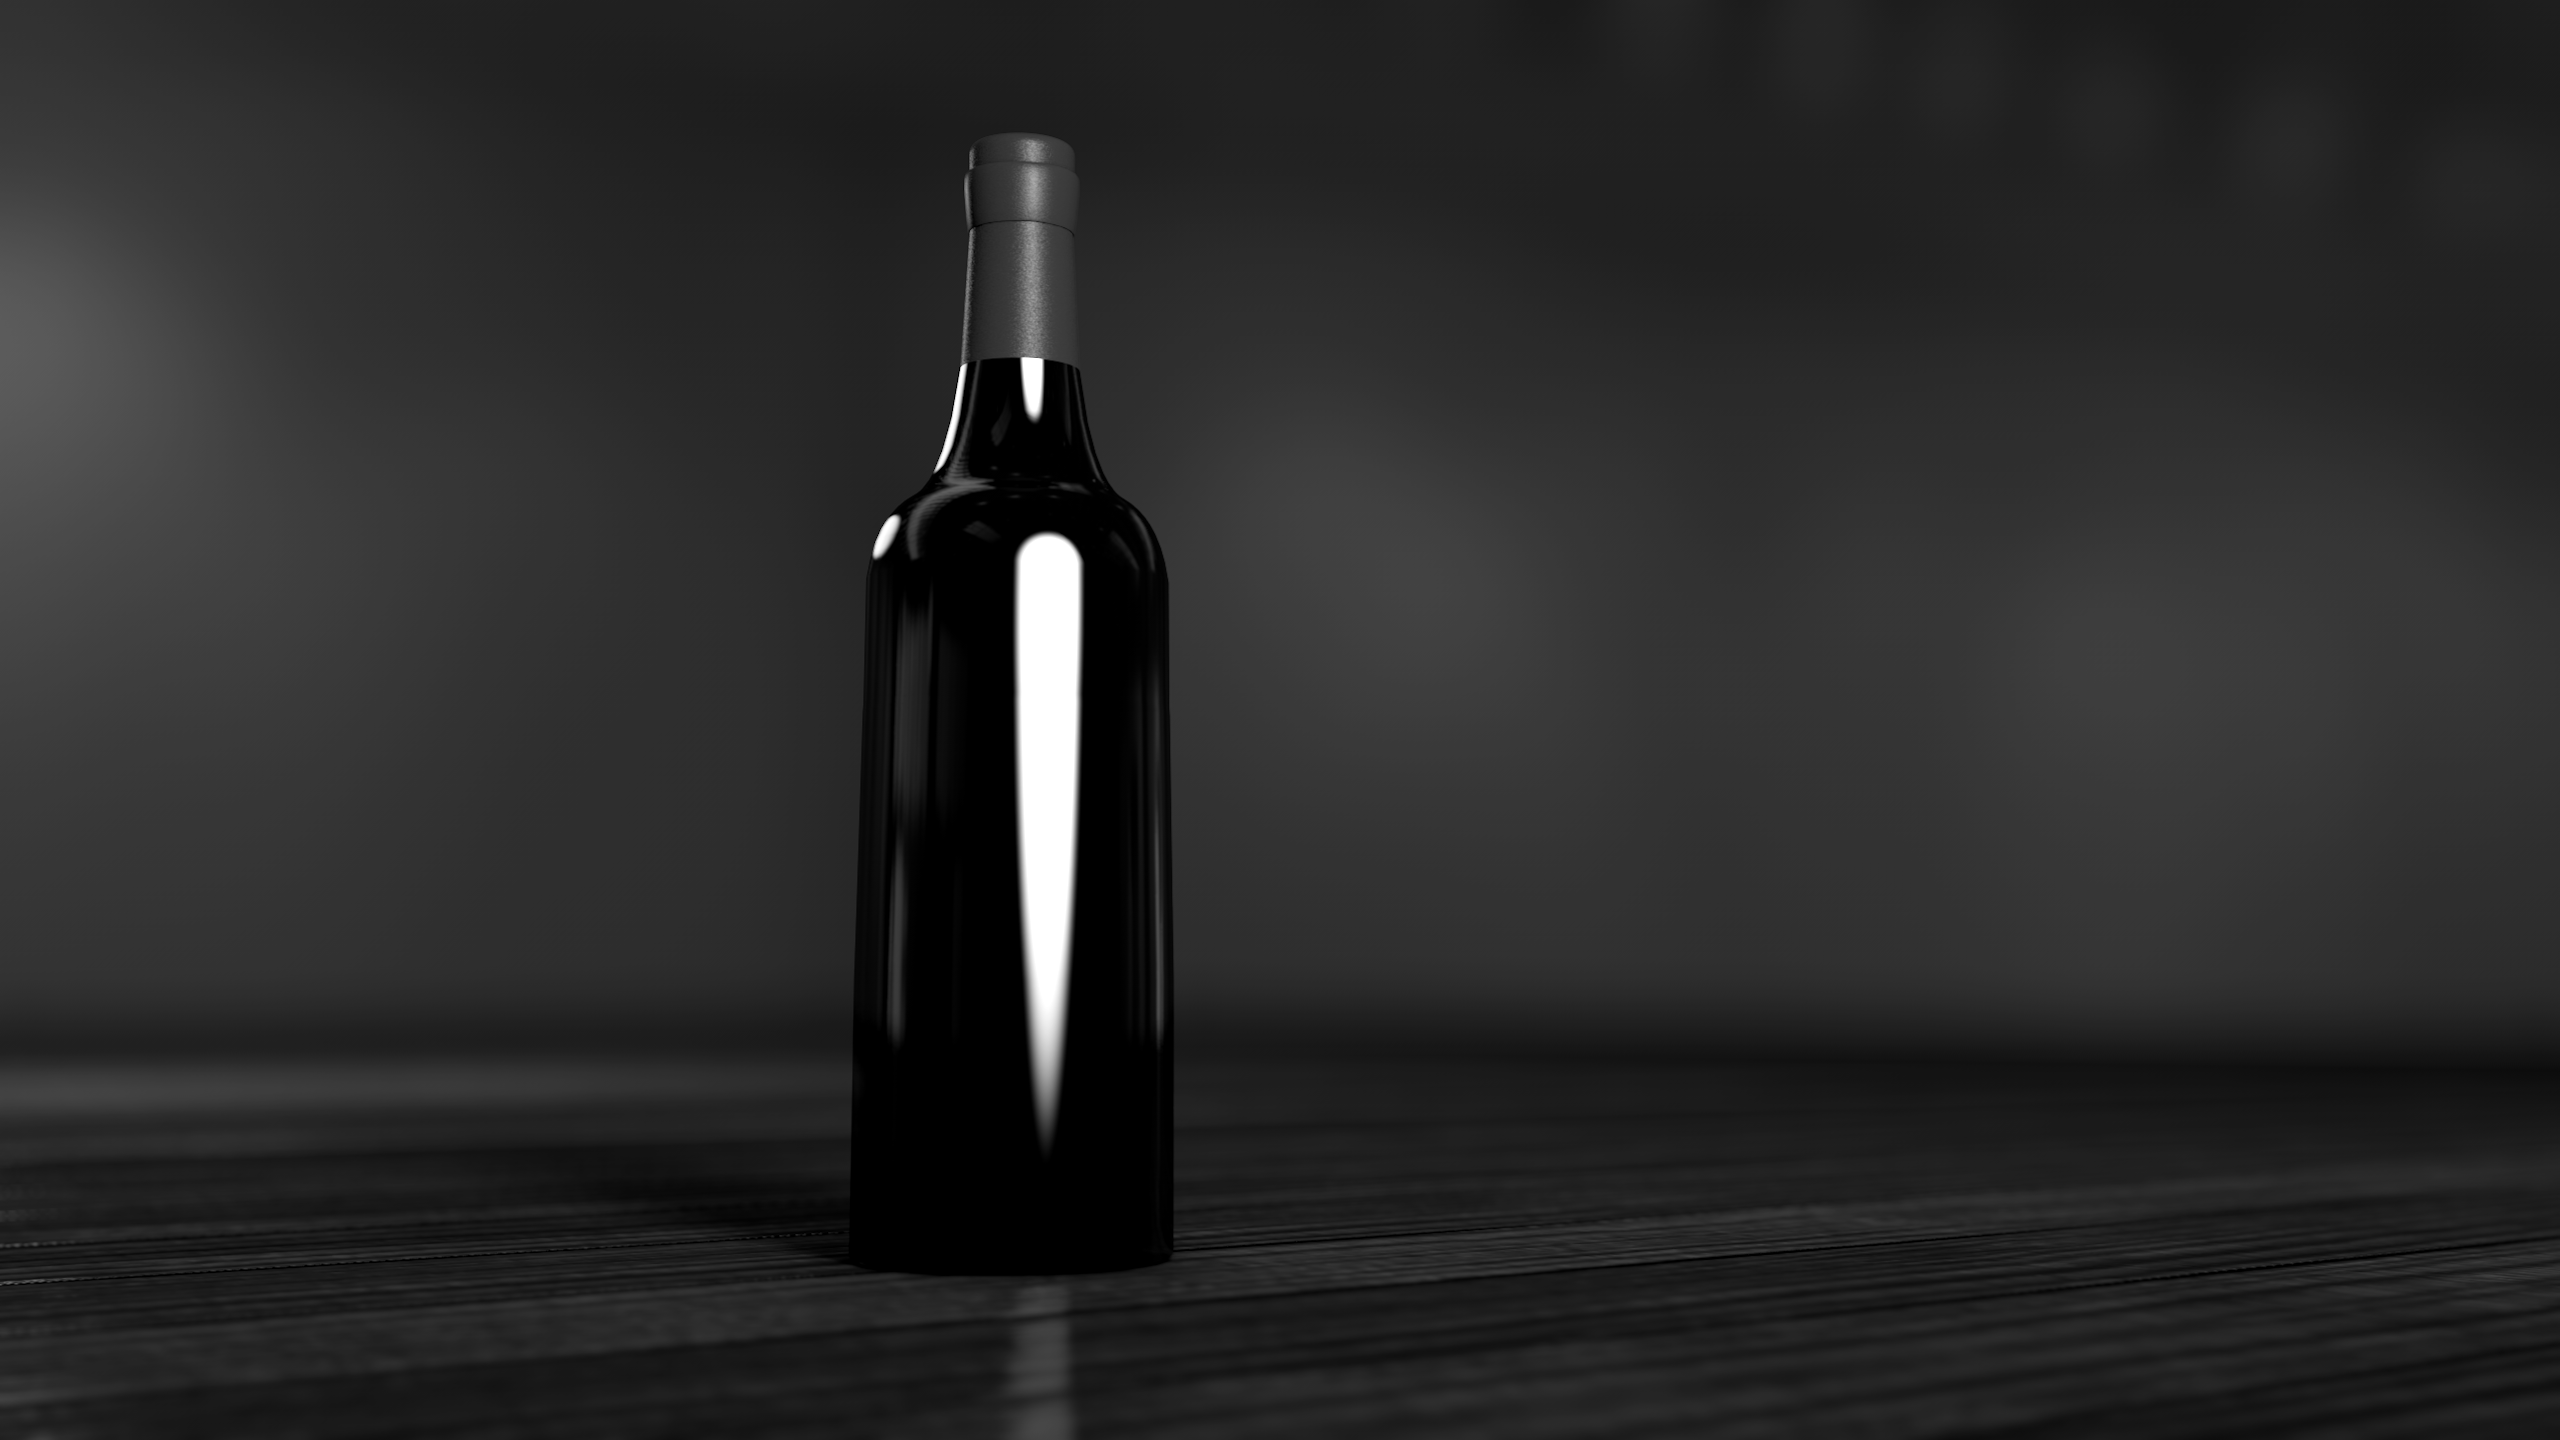 Black and white photo of a bottle of wine.